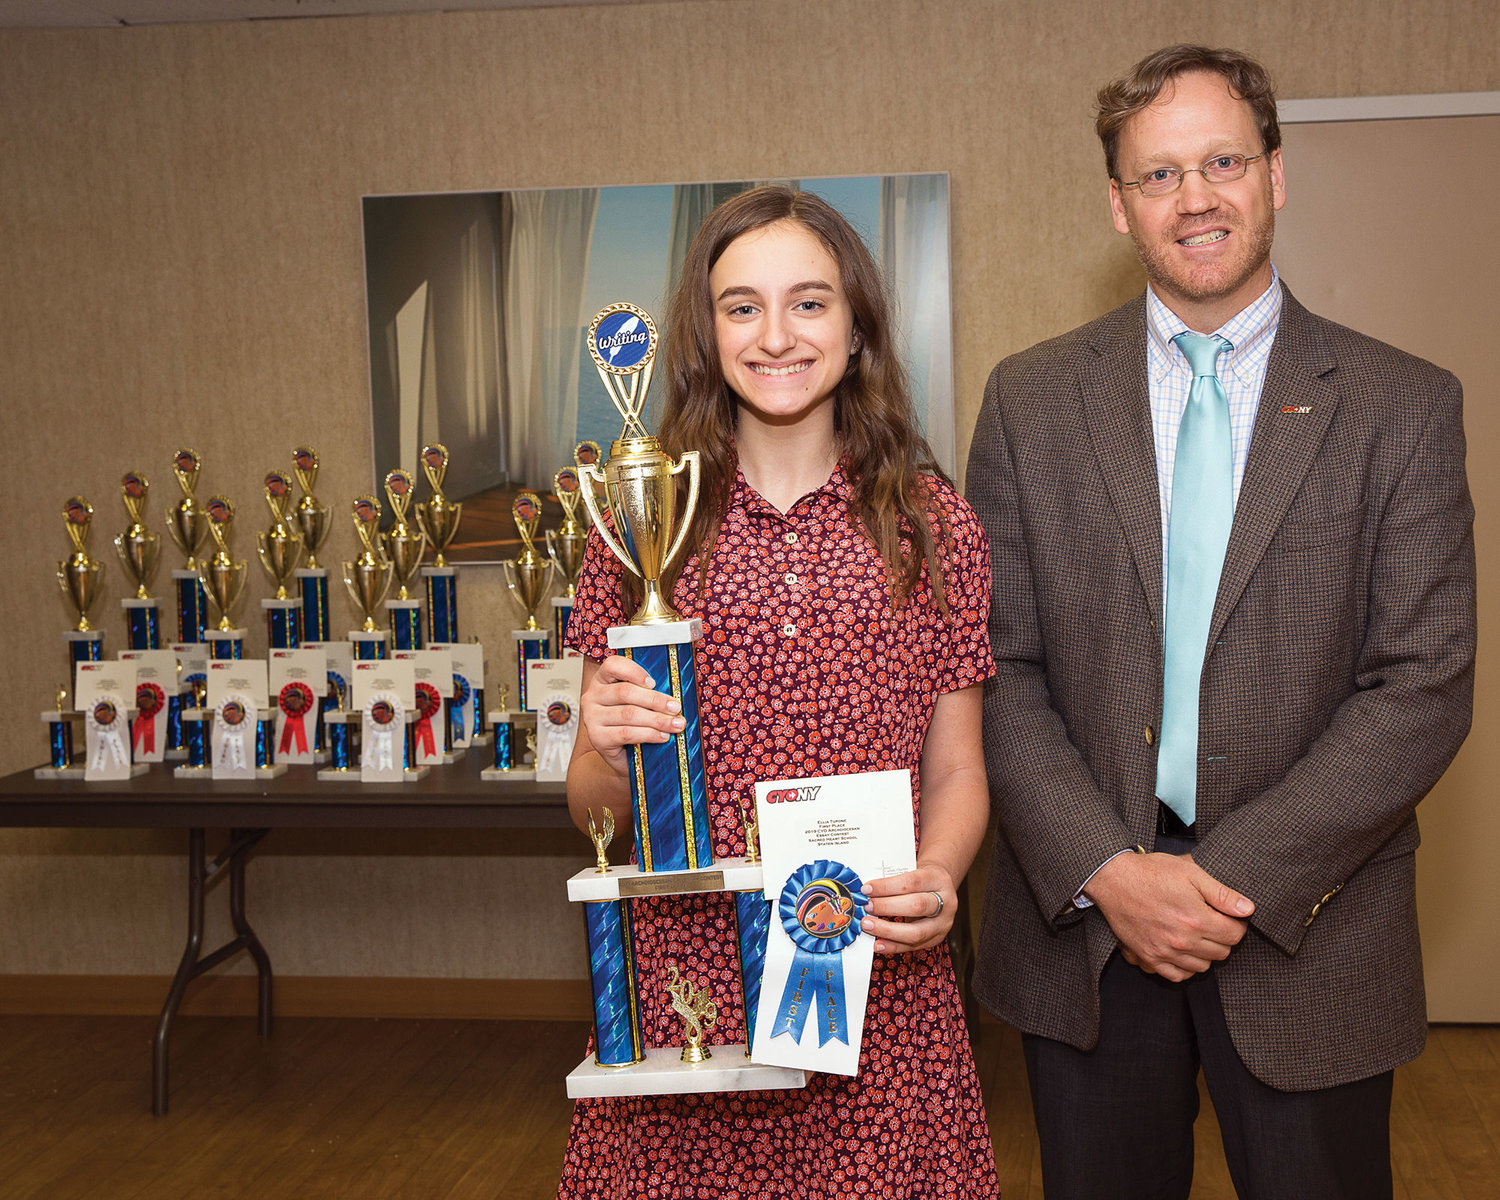 Ellia Tupone, a seventh-grader at Sacred Heart School on Staten Island, was the first-place essay winner in the archdiocesan CYO Art and Essay Contest. With her is Seth Peloso, CYO director.